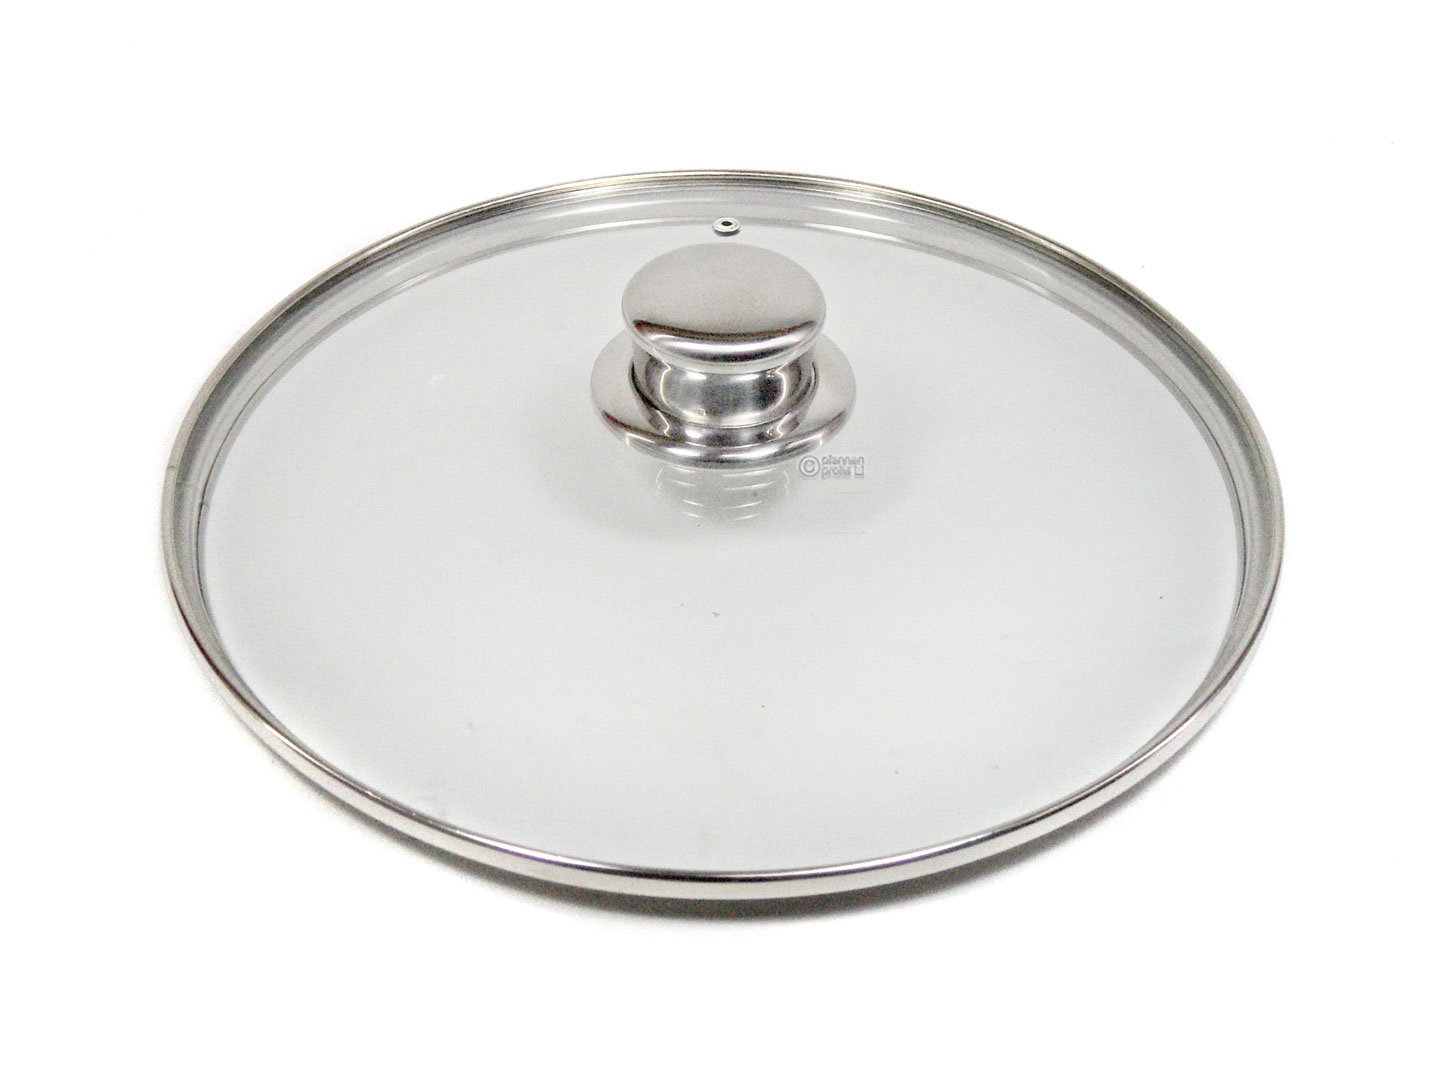 BEKA glass lid CRISTAL 24 cm ovenproof up to 180°C